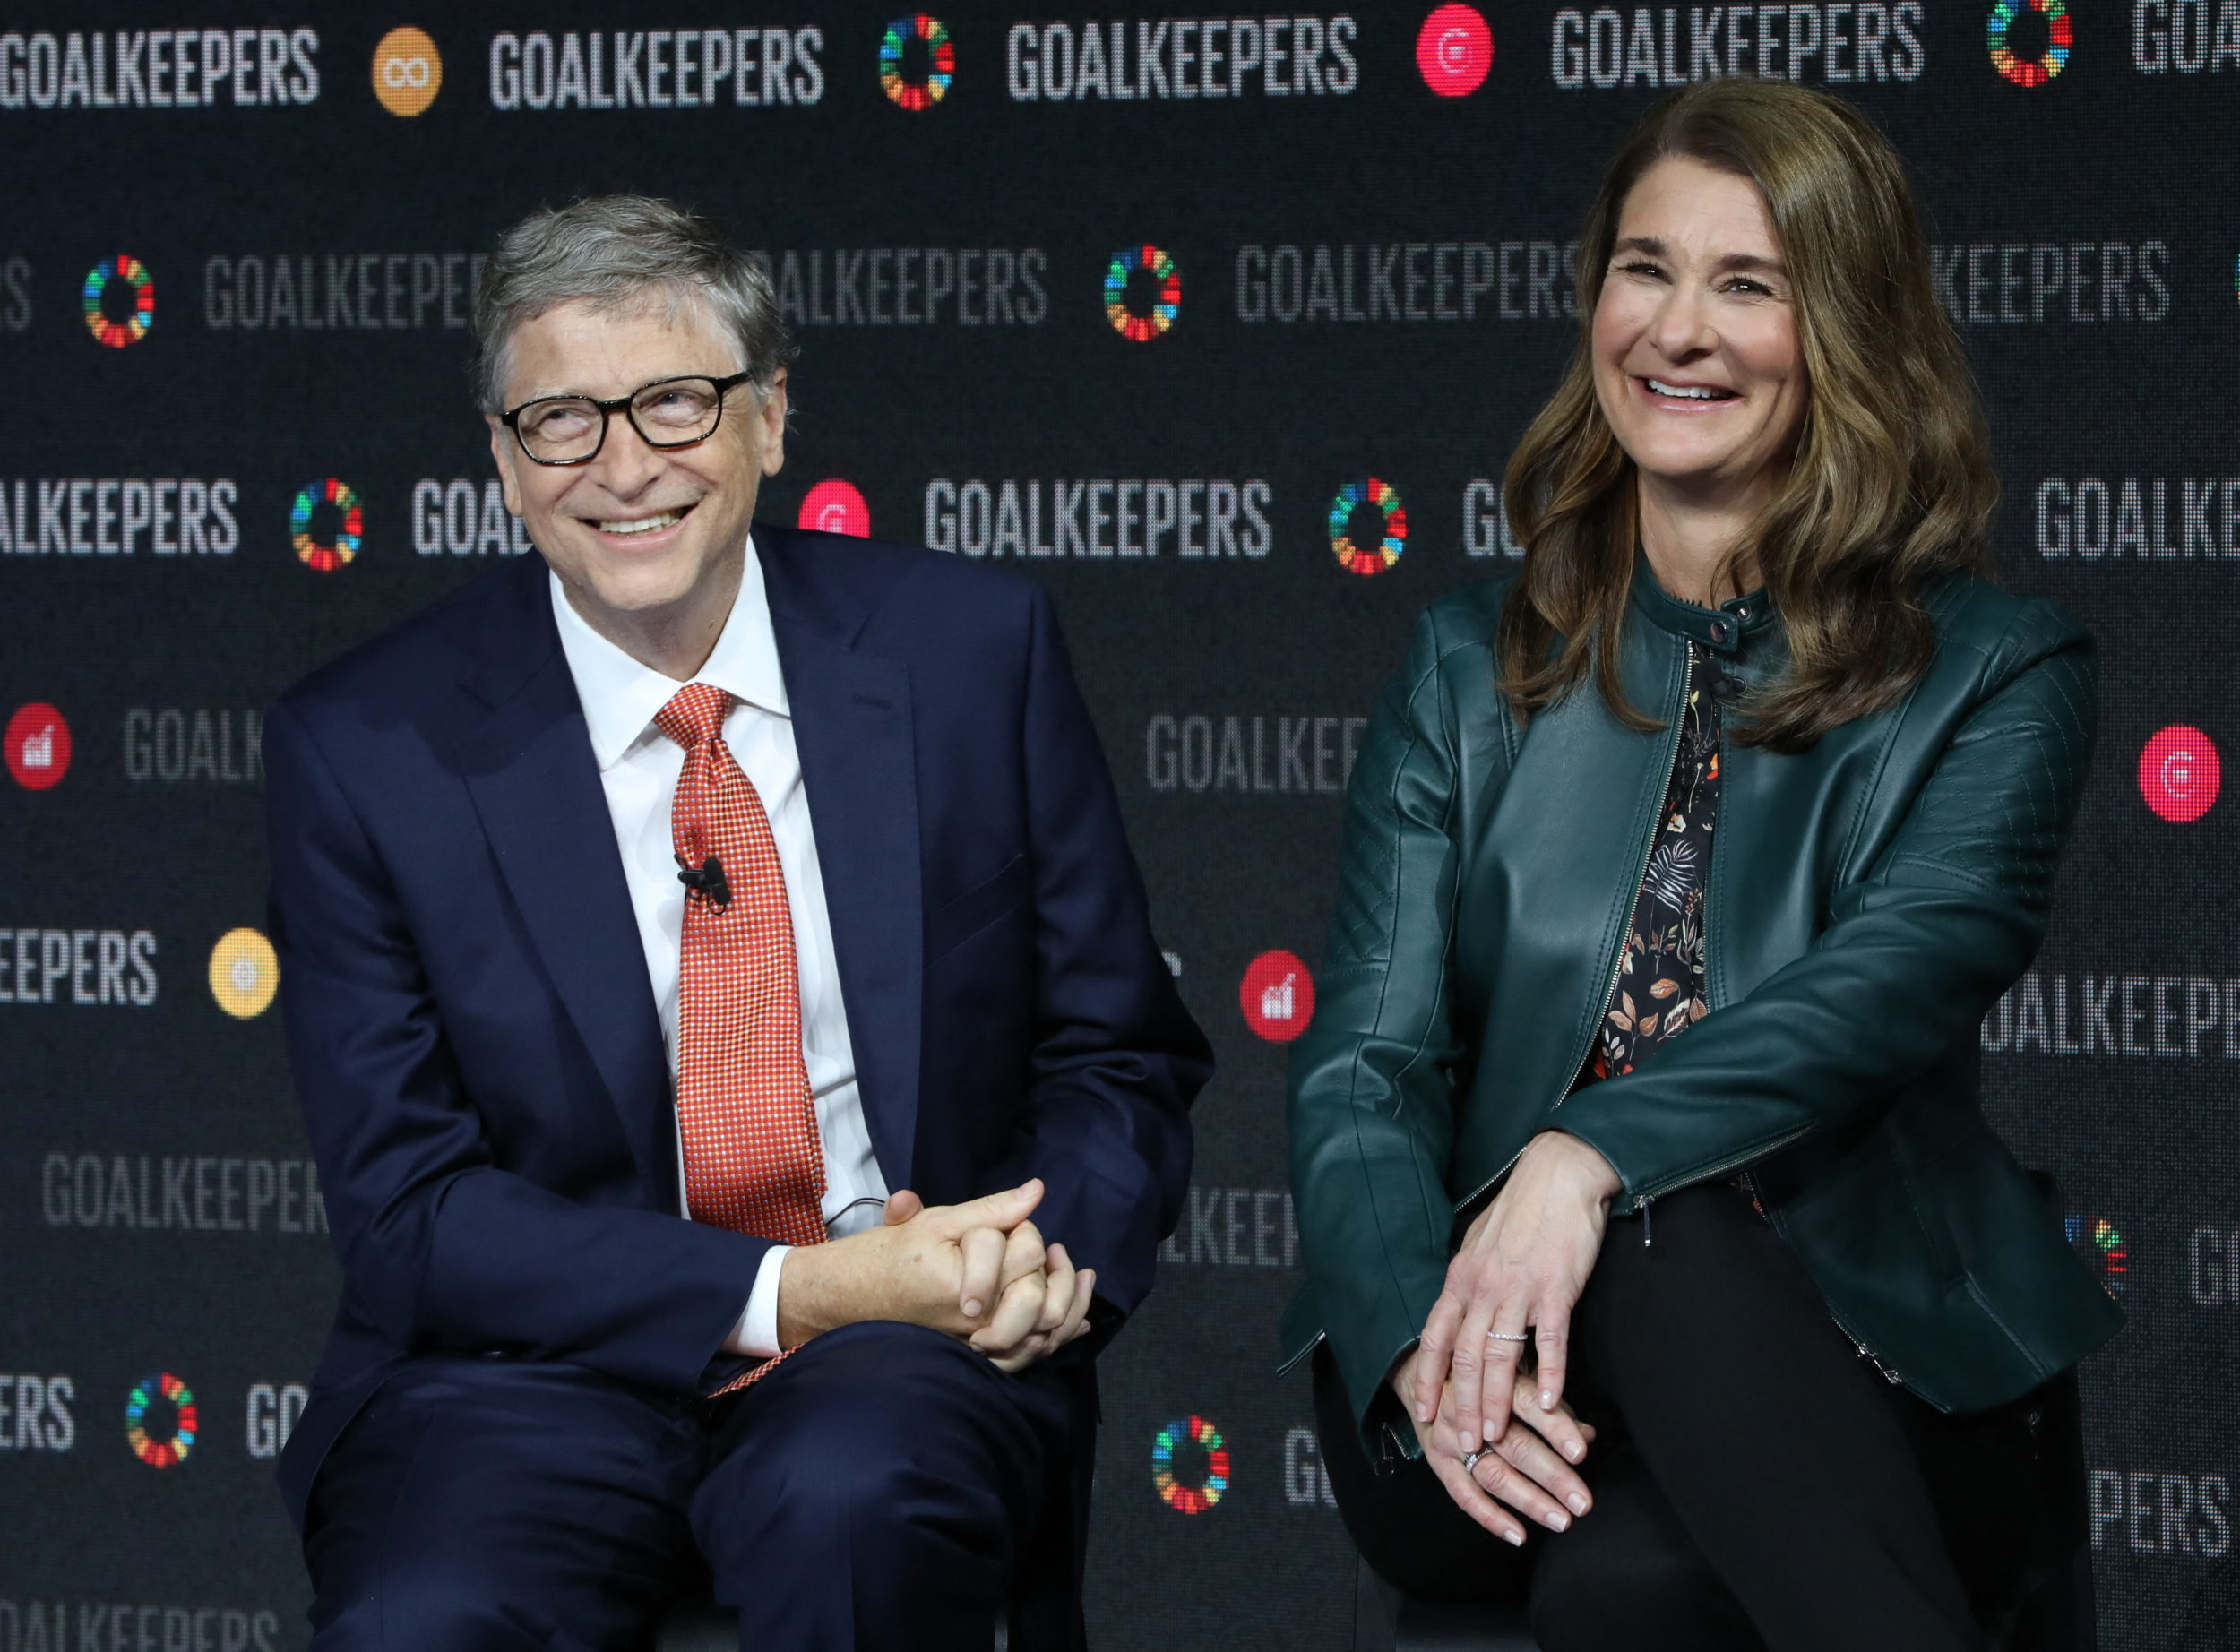 Bill and Melinda Gates call it quits after 27 years of marriage - Tripale